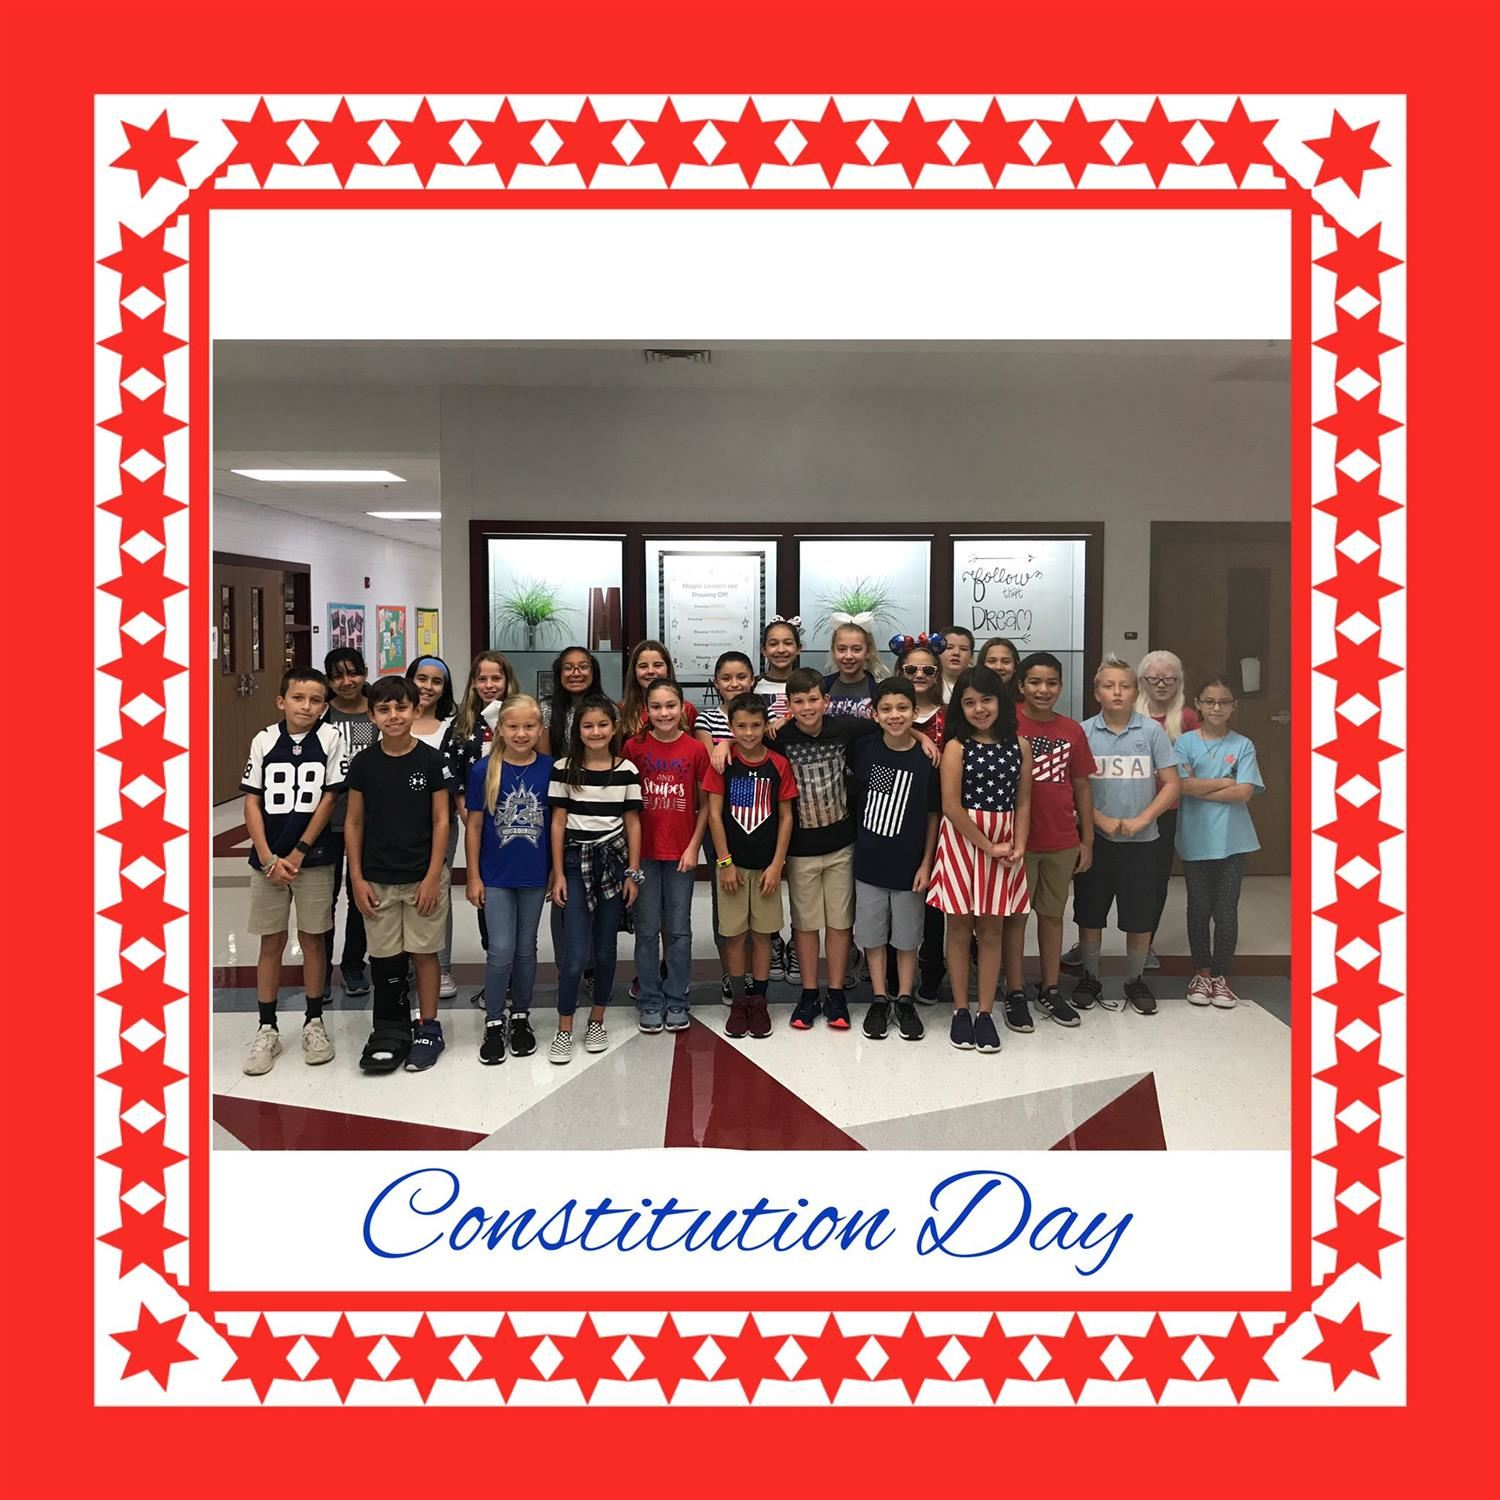 Stars and Stripes @ Magee! #ConstitutionDay